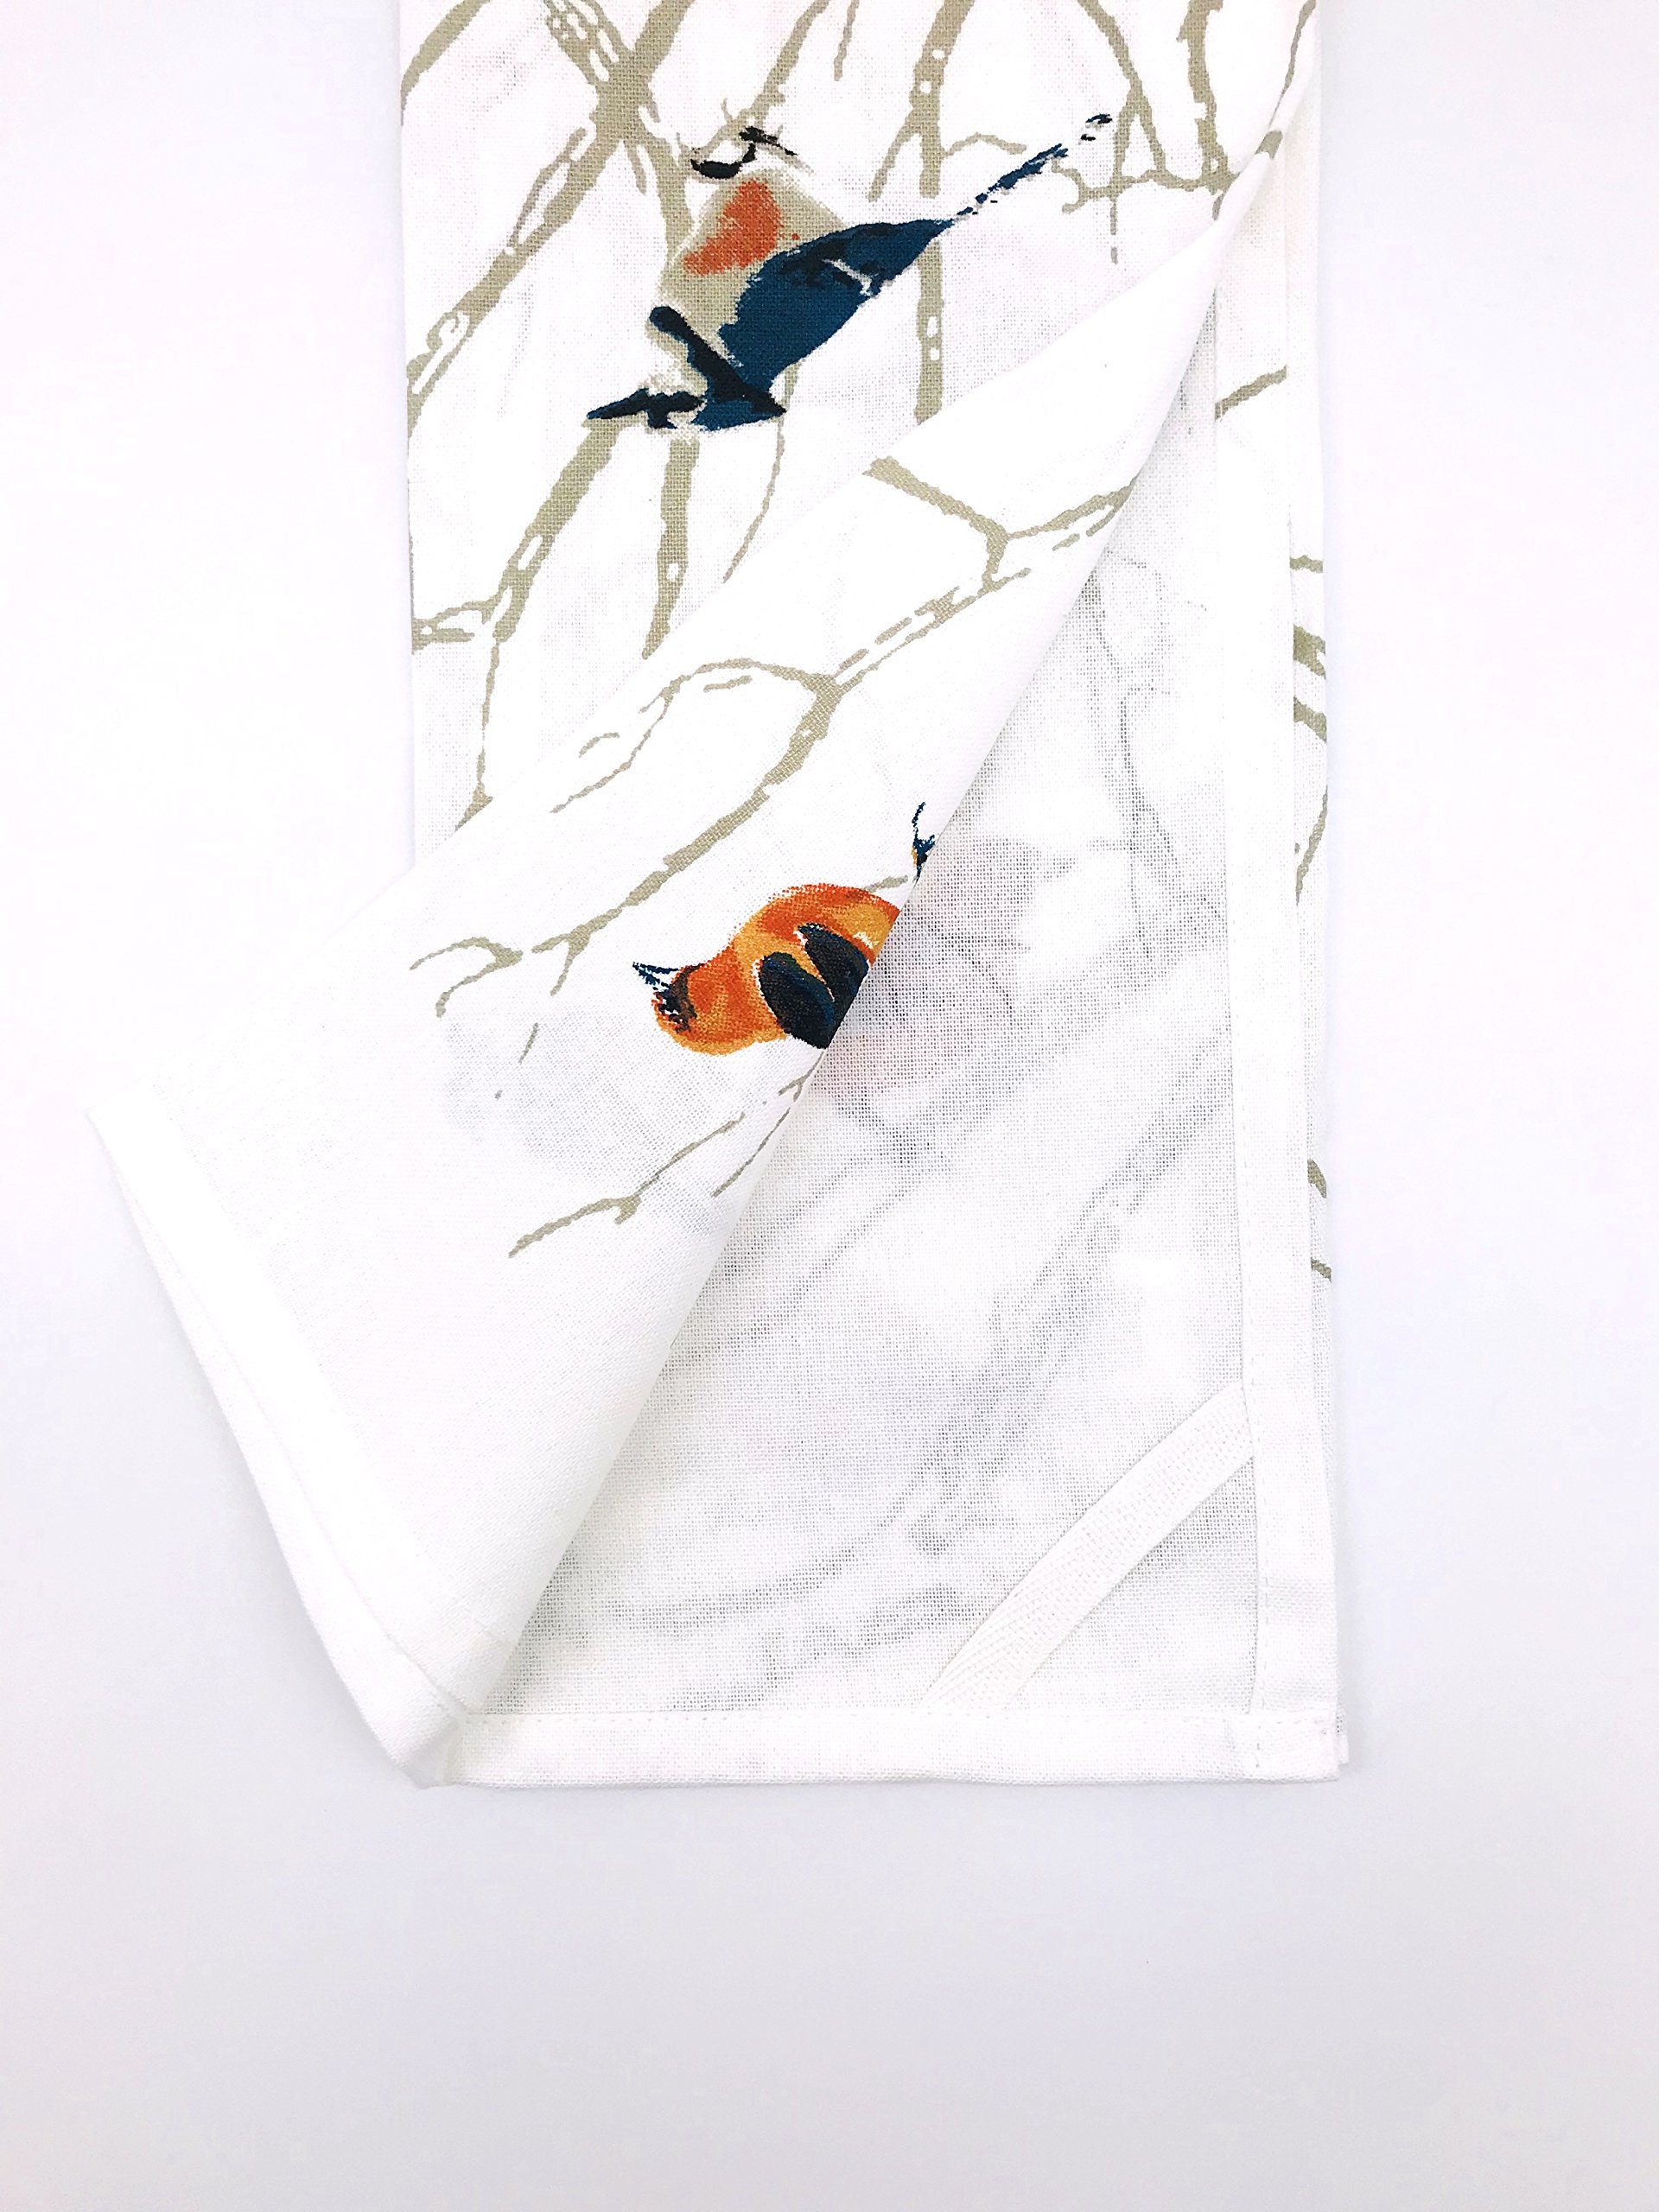 INDIA OVERSEAS Bird Watching Hand Towels: Colorful Artistic Wildlife Design, Set of 2 by INDIA OVERSEAS (Image #2)